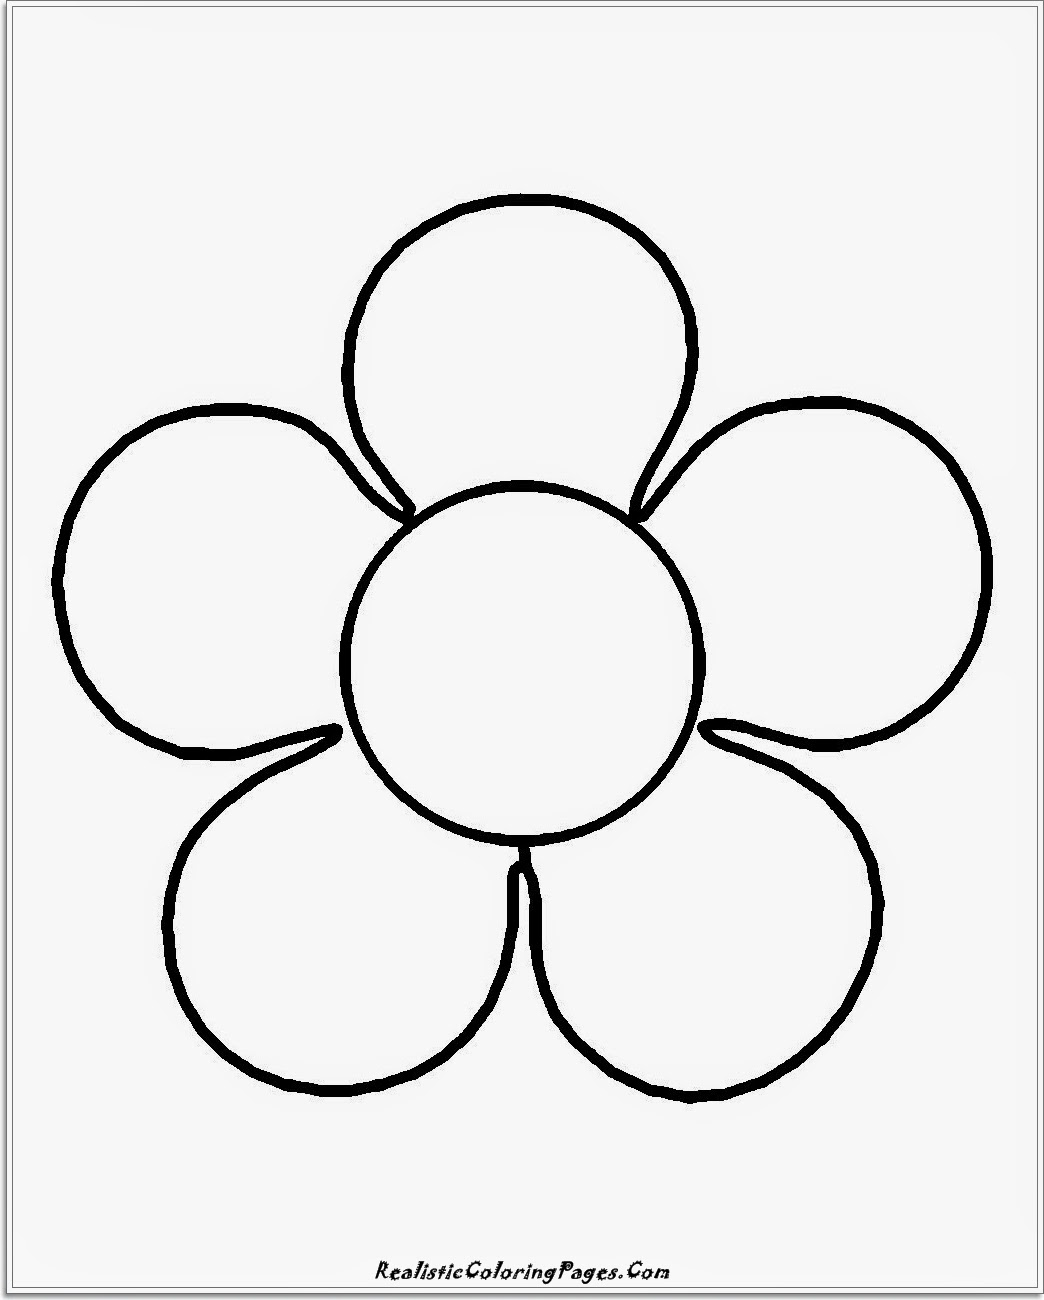 14 simple nature coloring pages realistic coloring pages for Coloring pages of a flower